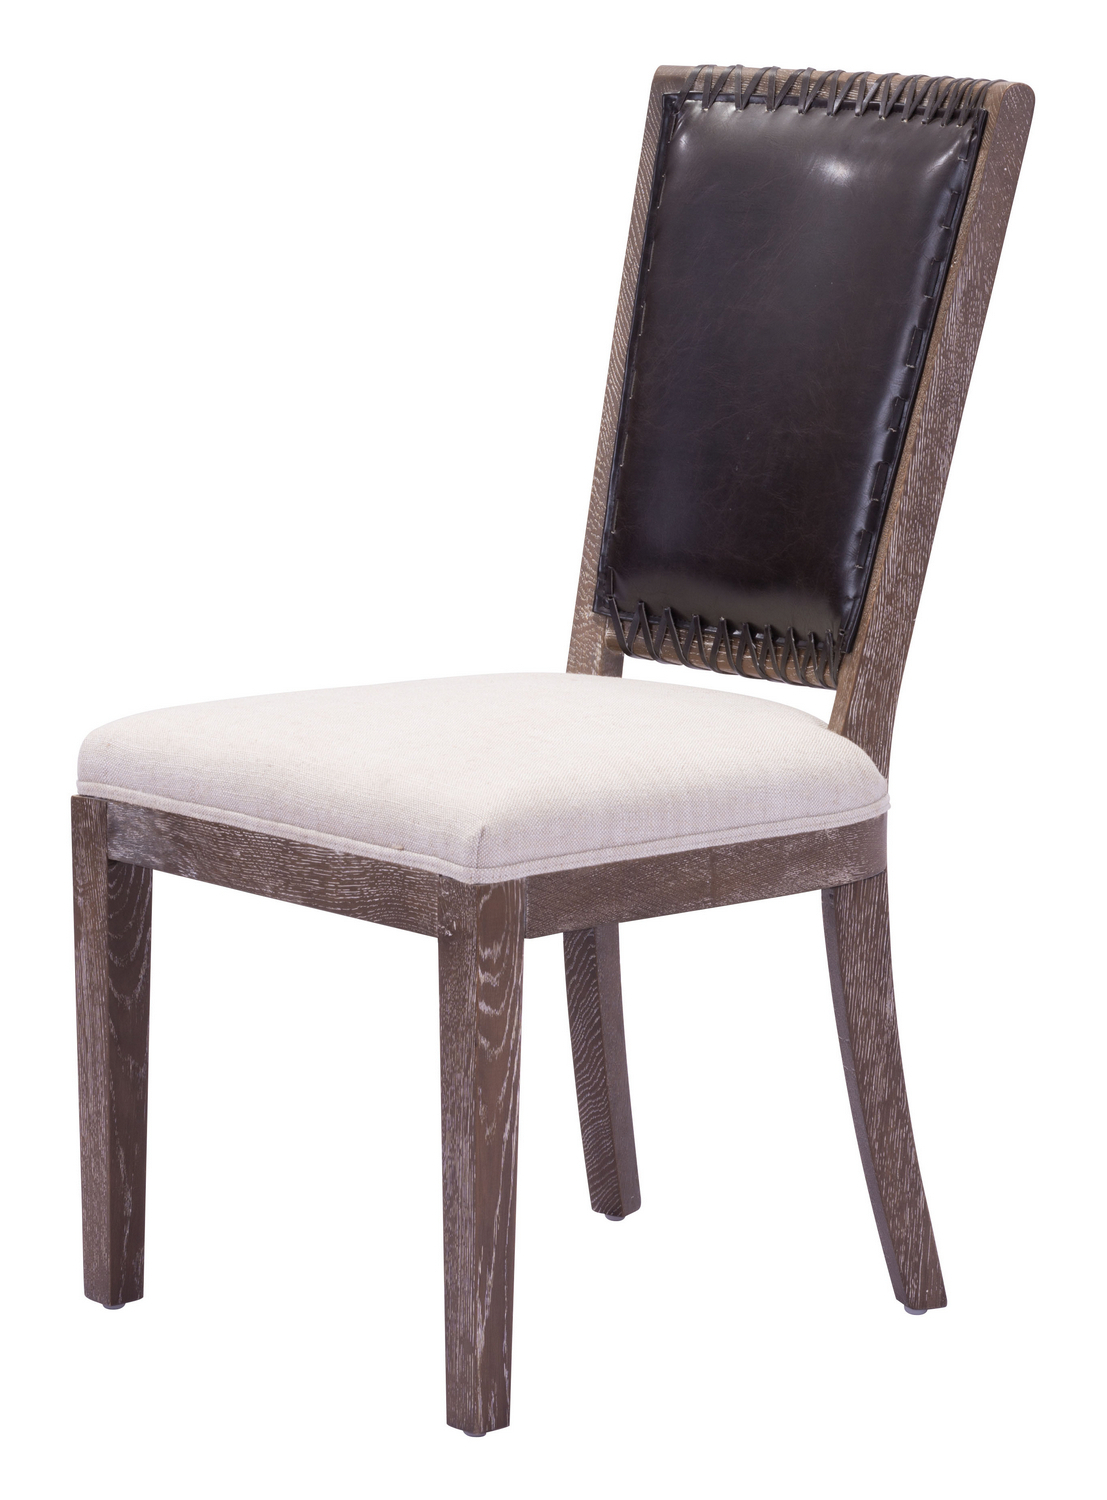 Most Recent Dining Chair From The Market Collectionzuo Modern Canada Pertaining To Artressia Barrel Chairs (View 10 of 20)